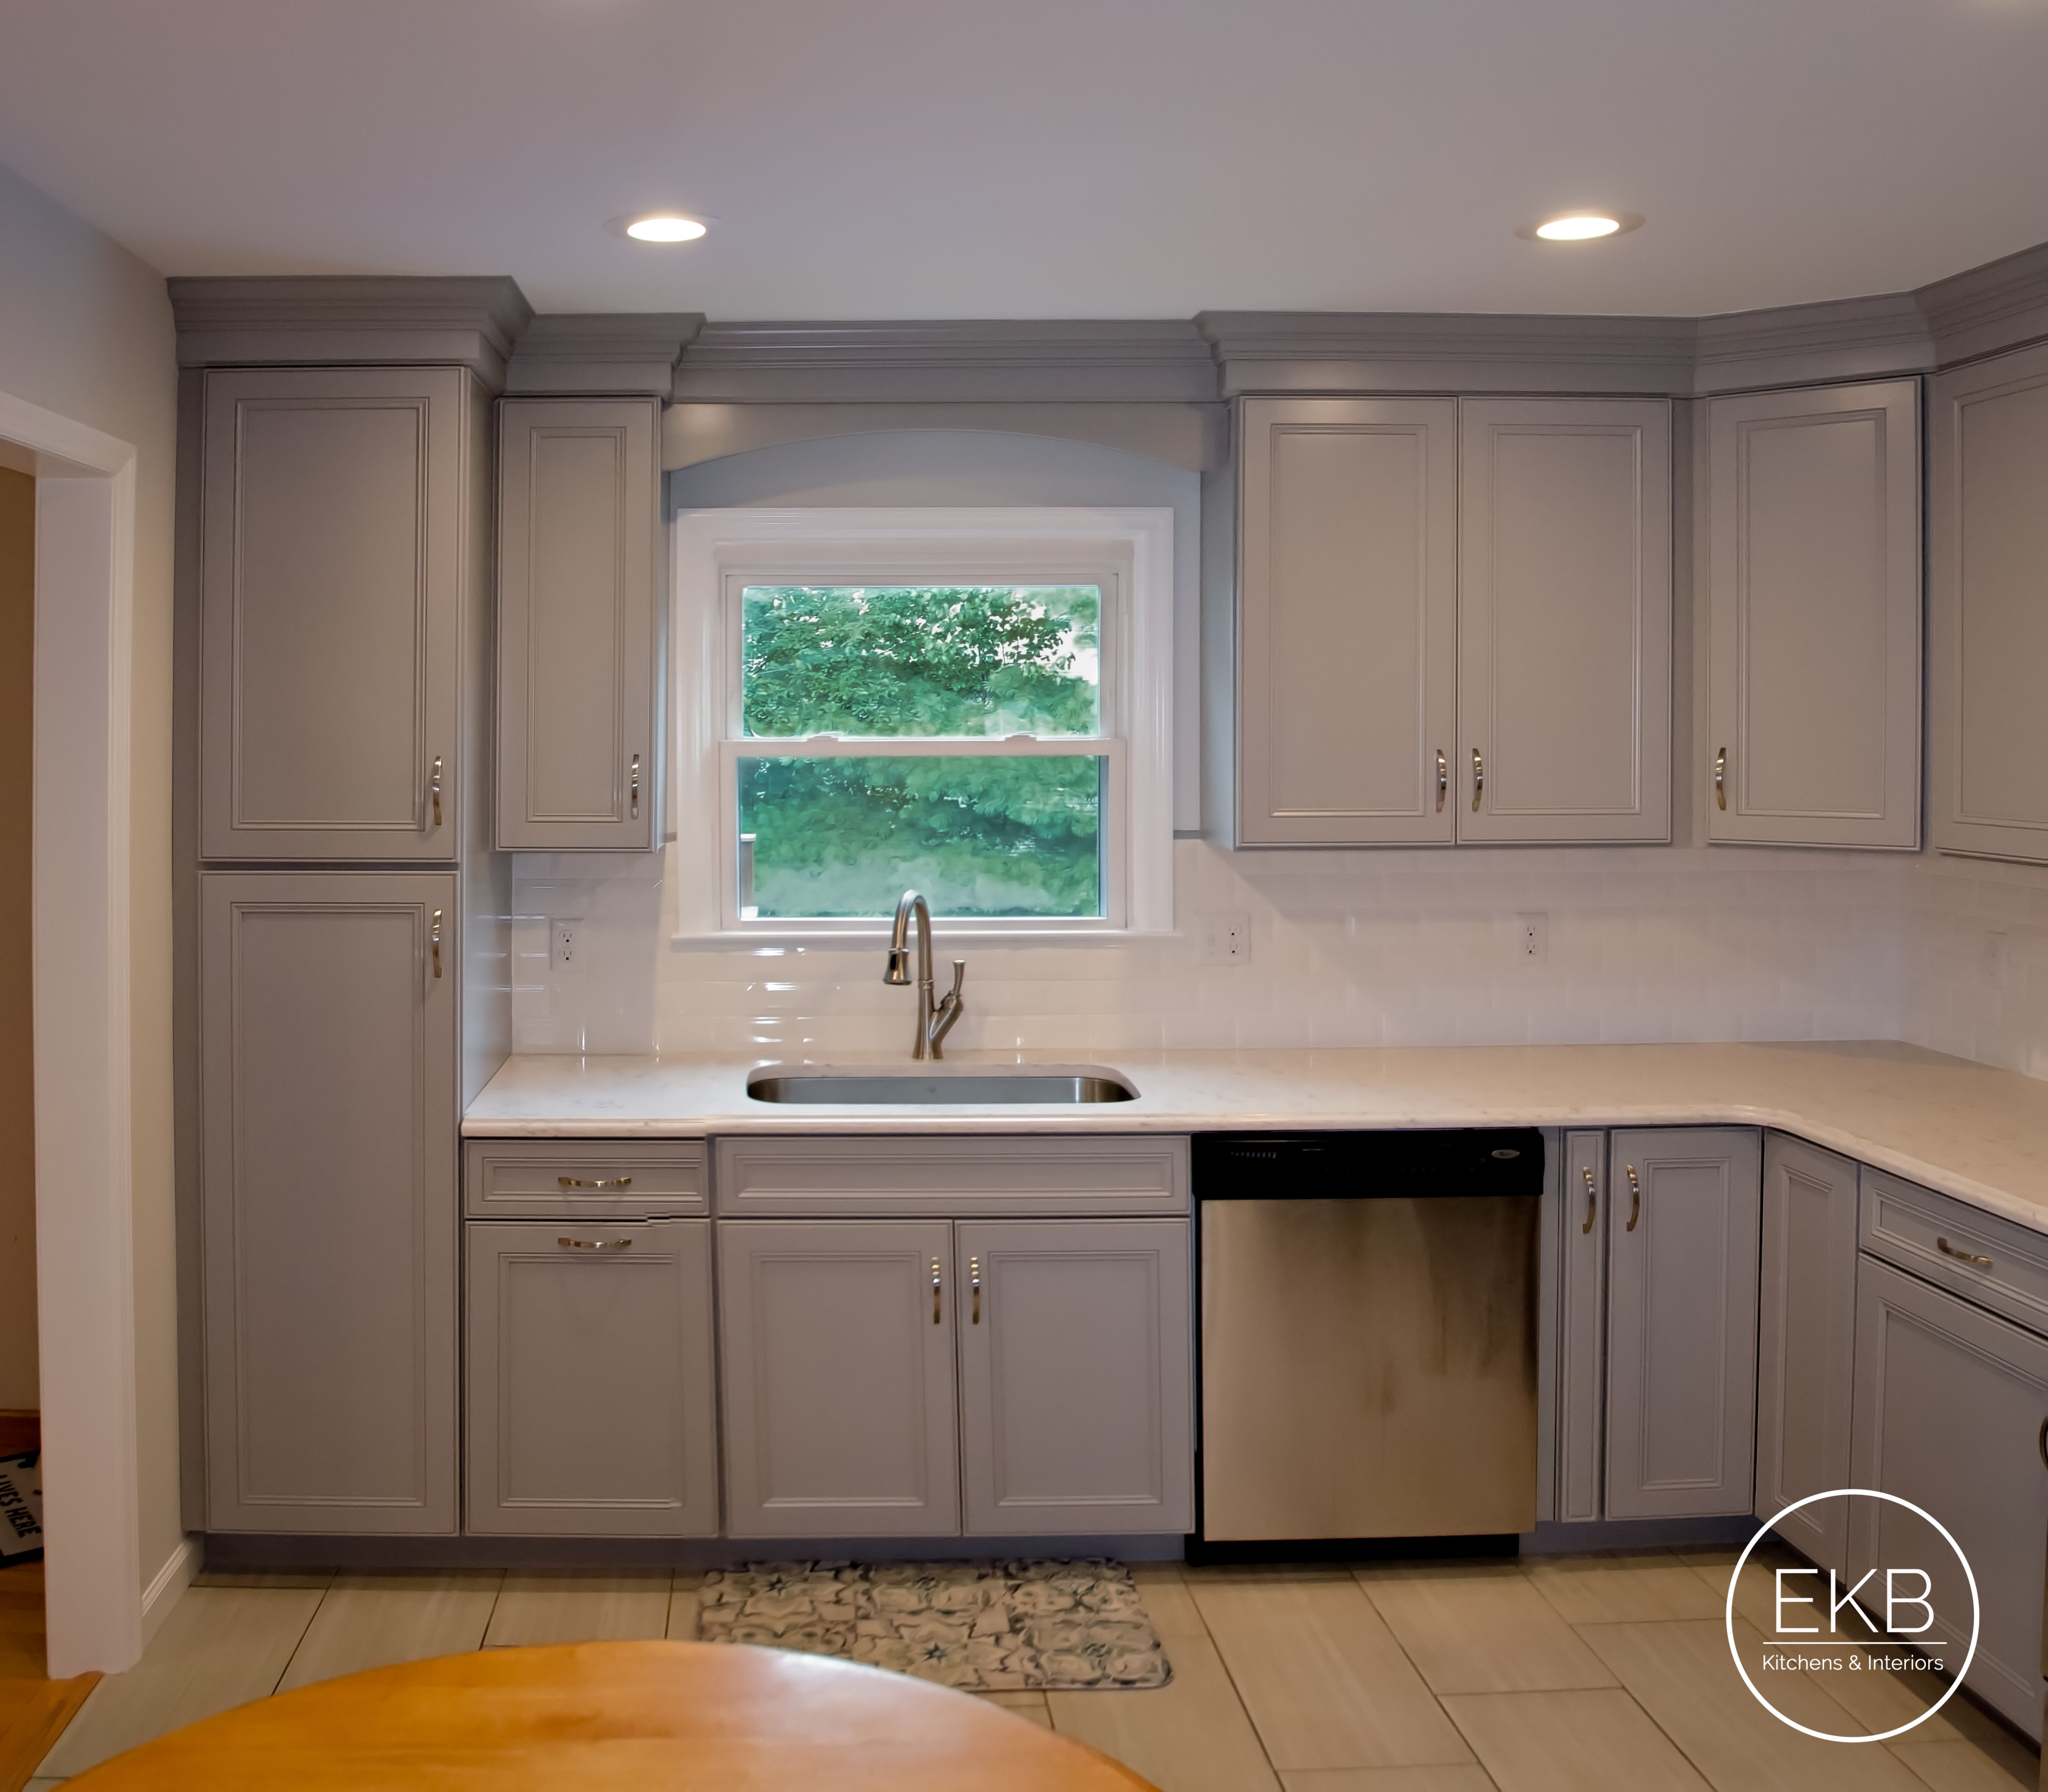 Waypoint 410f Cabinets In Painted Stone With Lyra Silestone Countertops Kitchen Remodel Kitchen Design Kitchen Cabinets